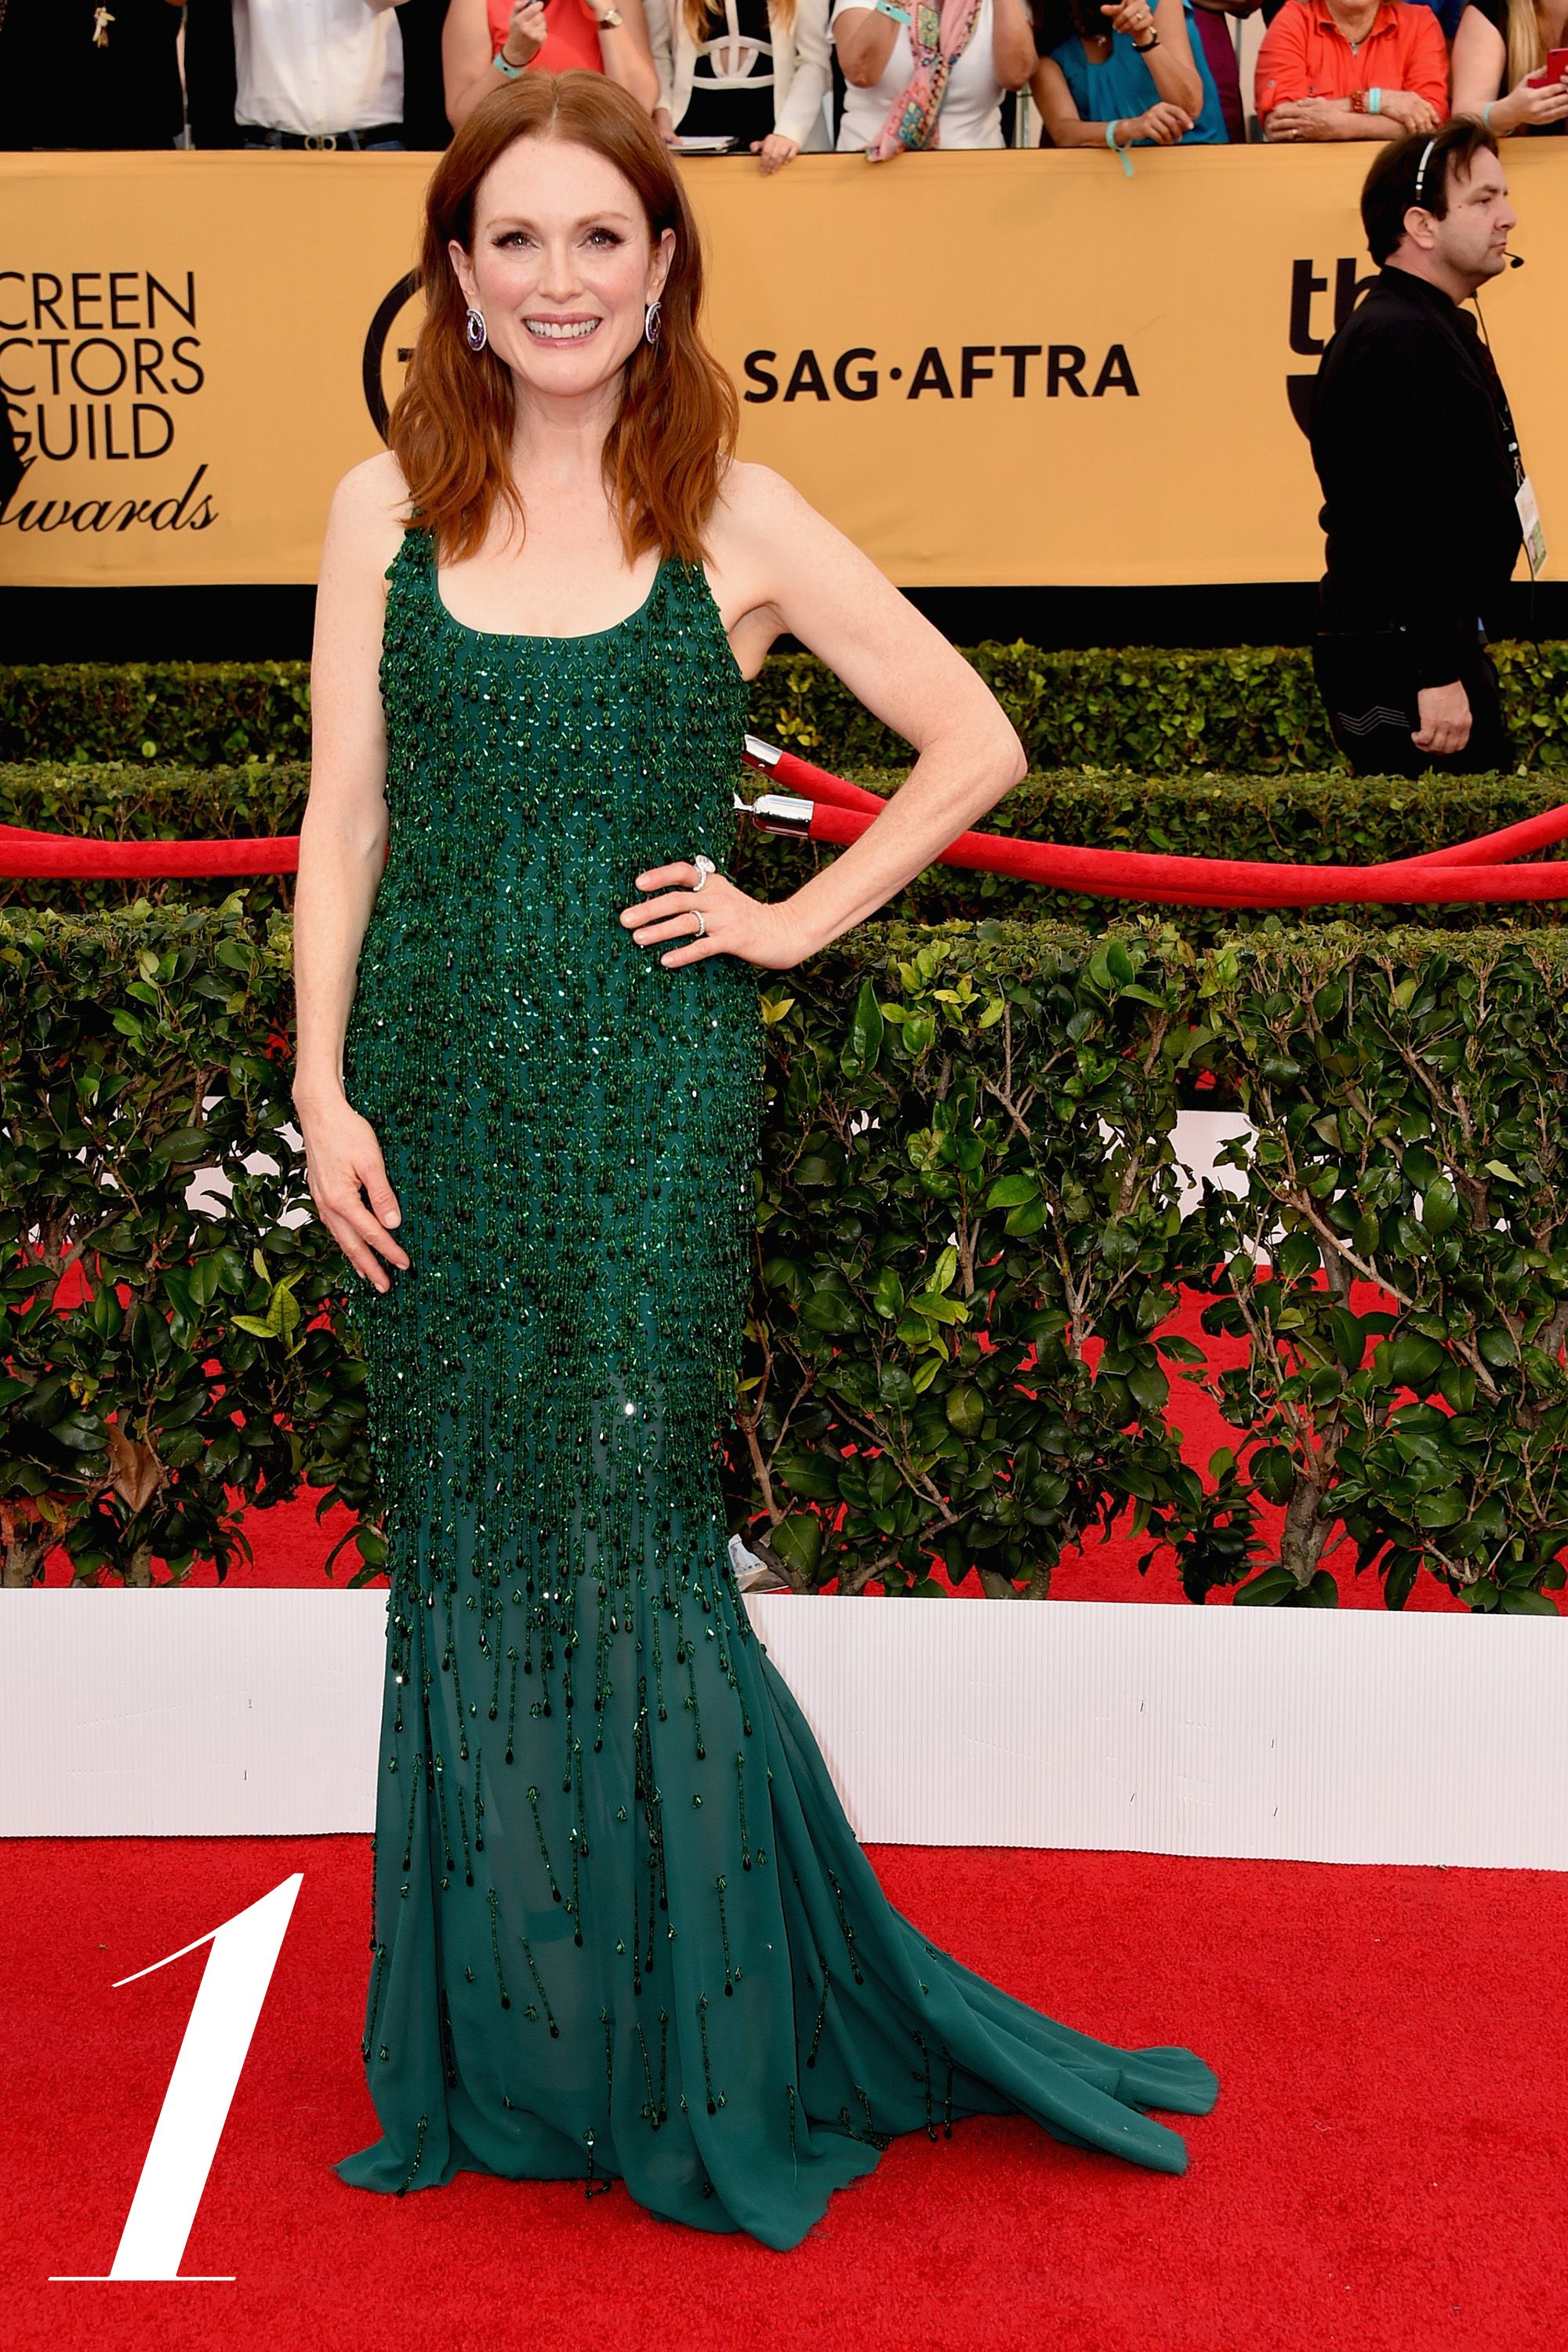 LOS ANGELES, CA - JANUARY 25:  Actress Julianne Moore attends the 21st Annual Screen Actors Guild Awards at The Shrine Auditorium on January 25, 2015 in Los Angeles, California.  (Photo by Steve Granitz/WireImage)